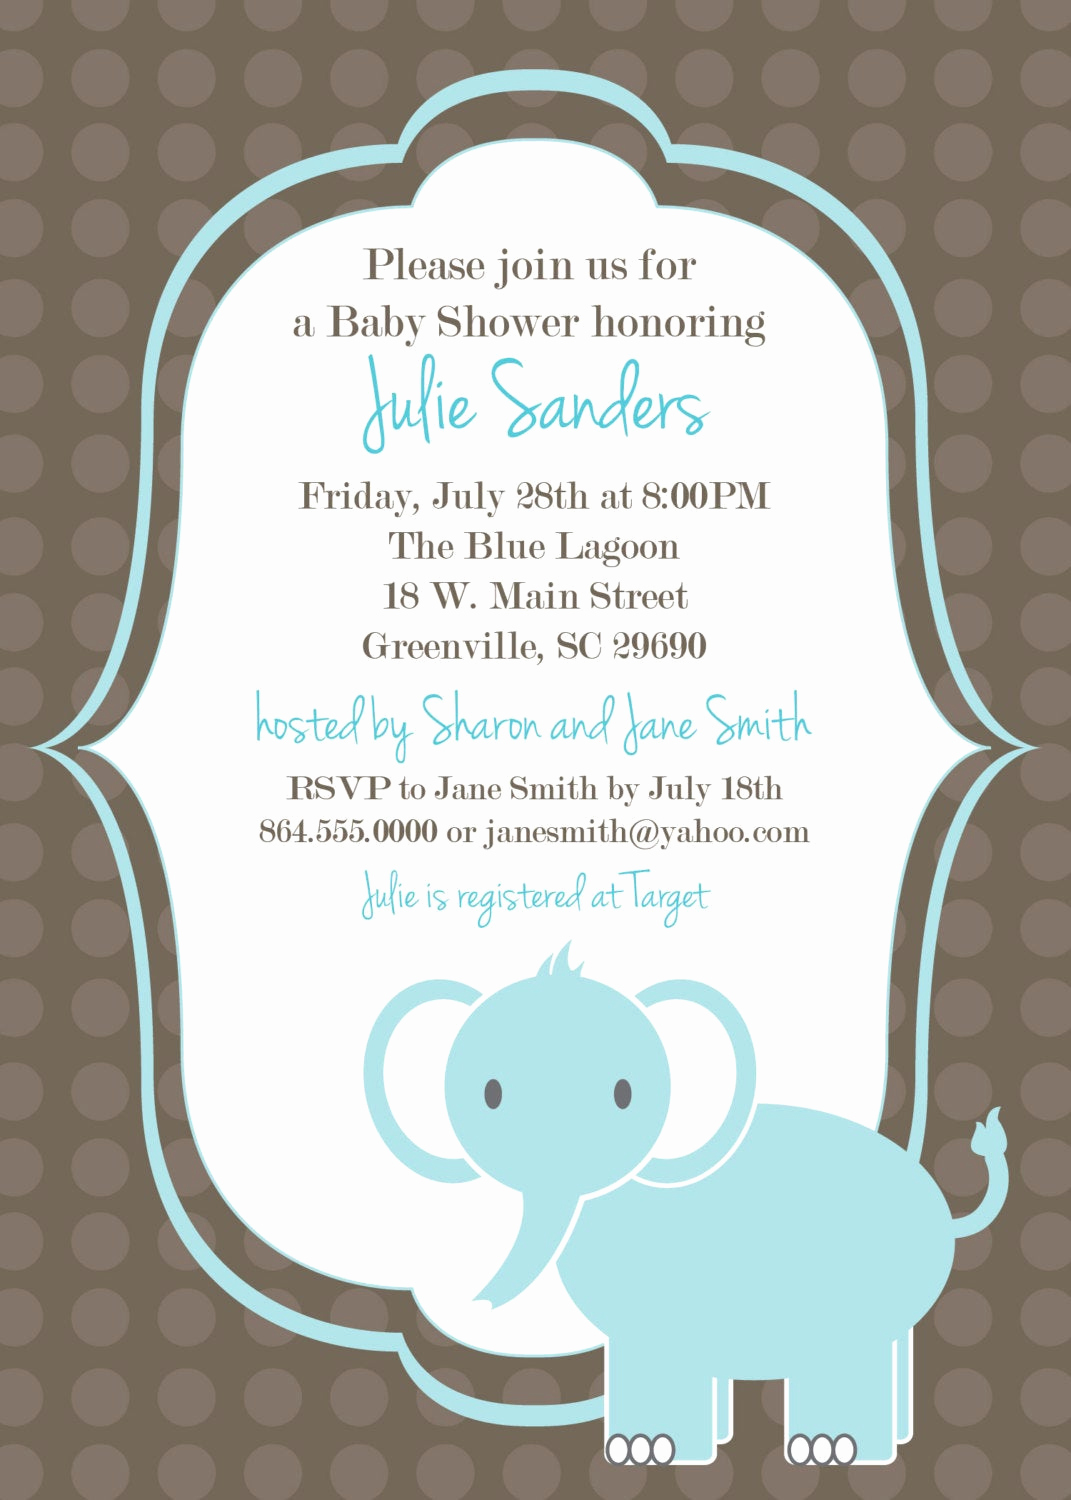 Baby Shower Invitation Pictures Awesome Printable Baby Shower Invitation Elephant Boy Light Blue